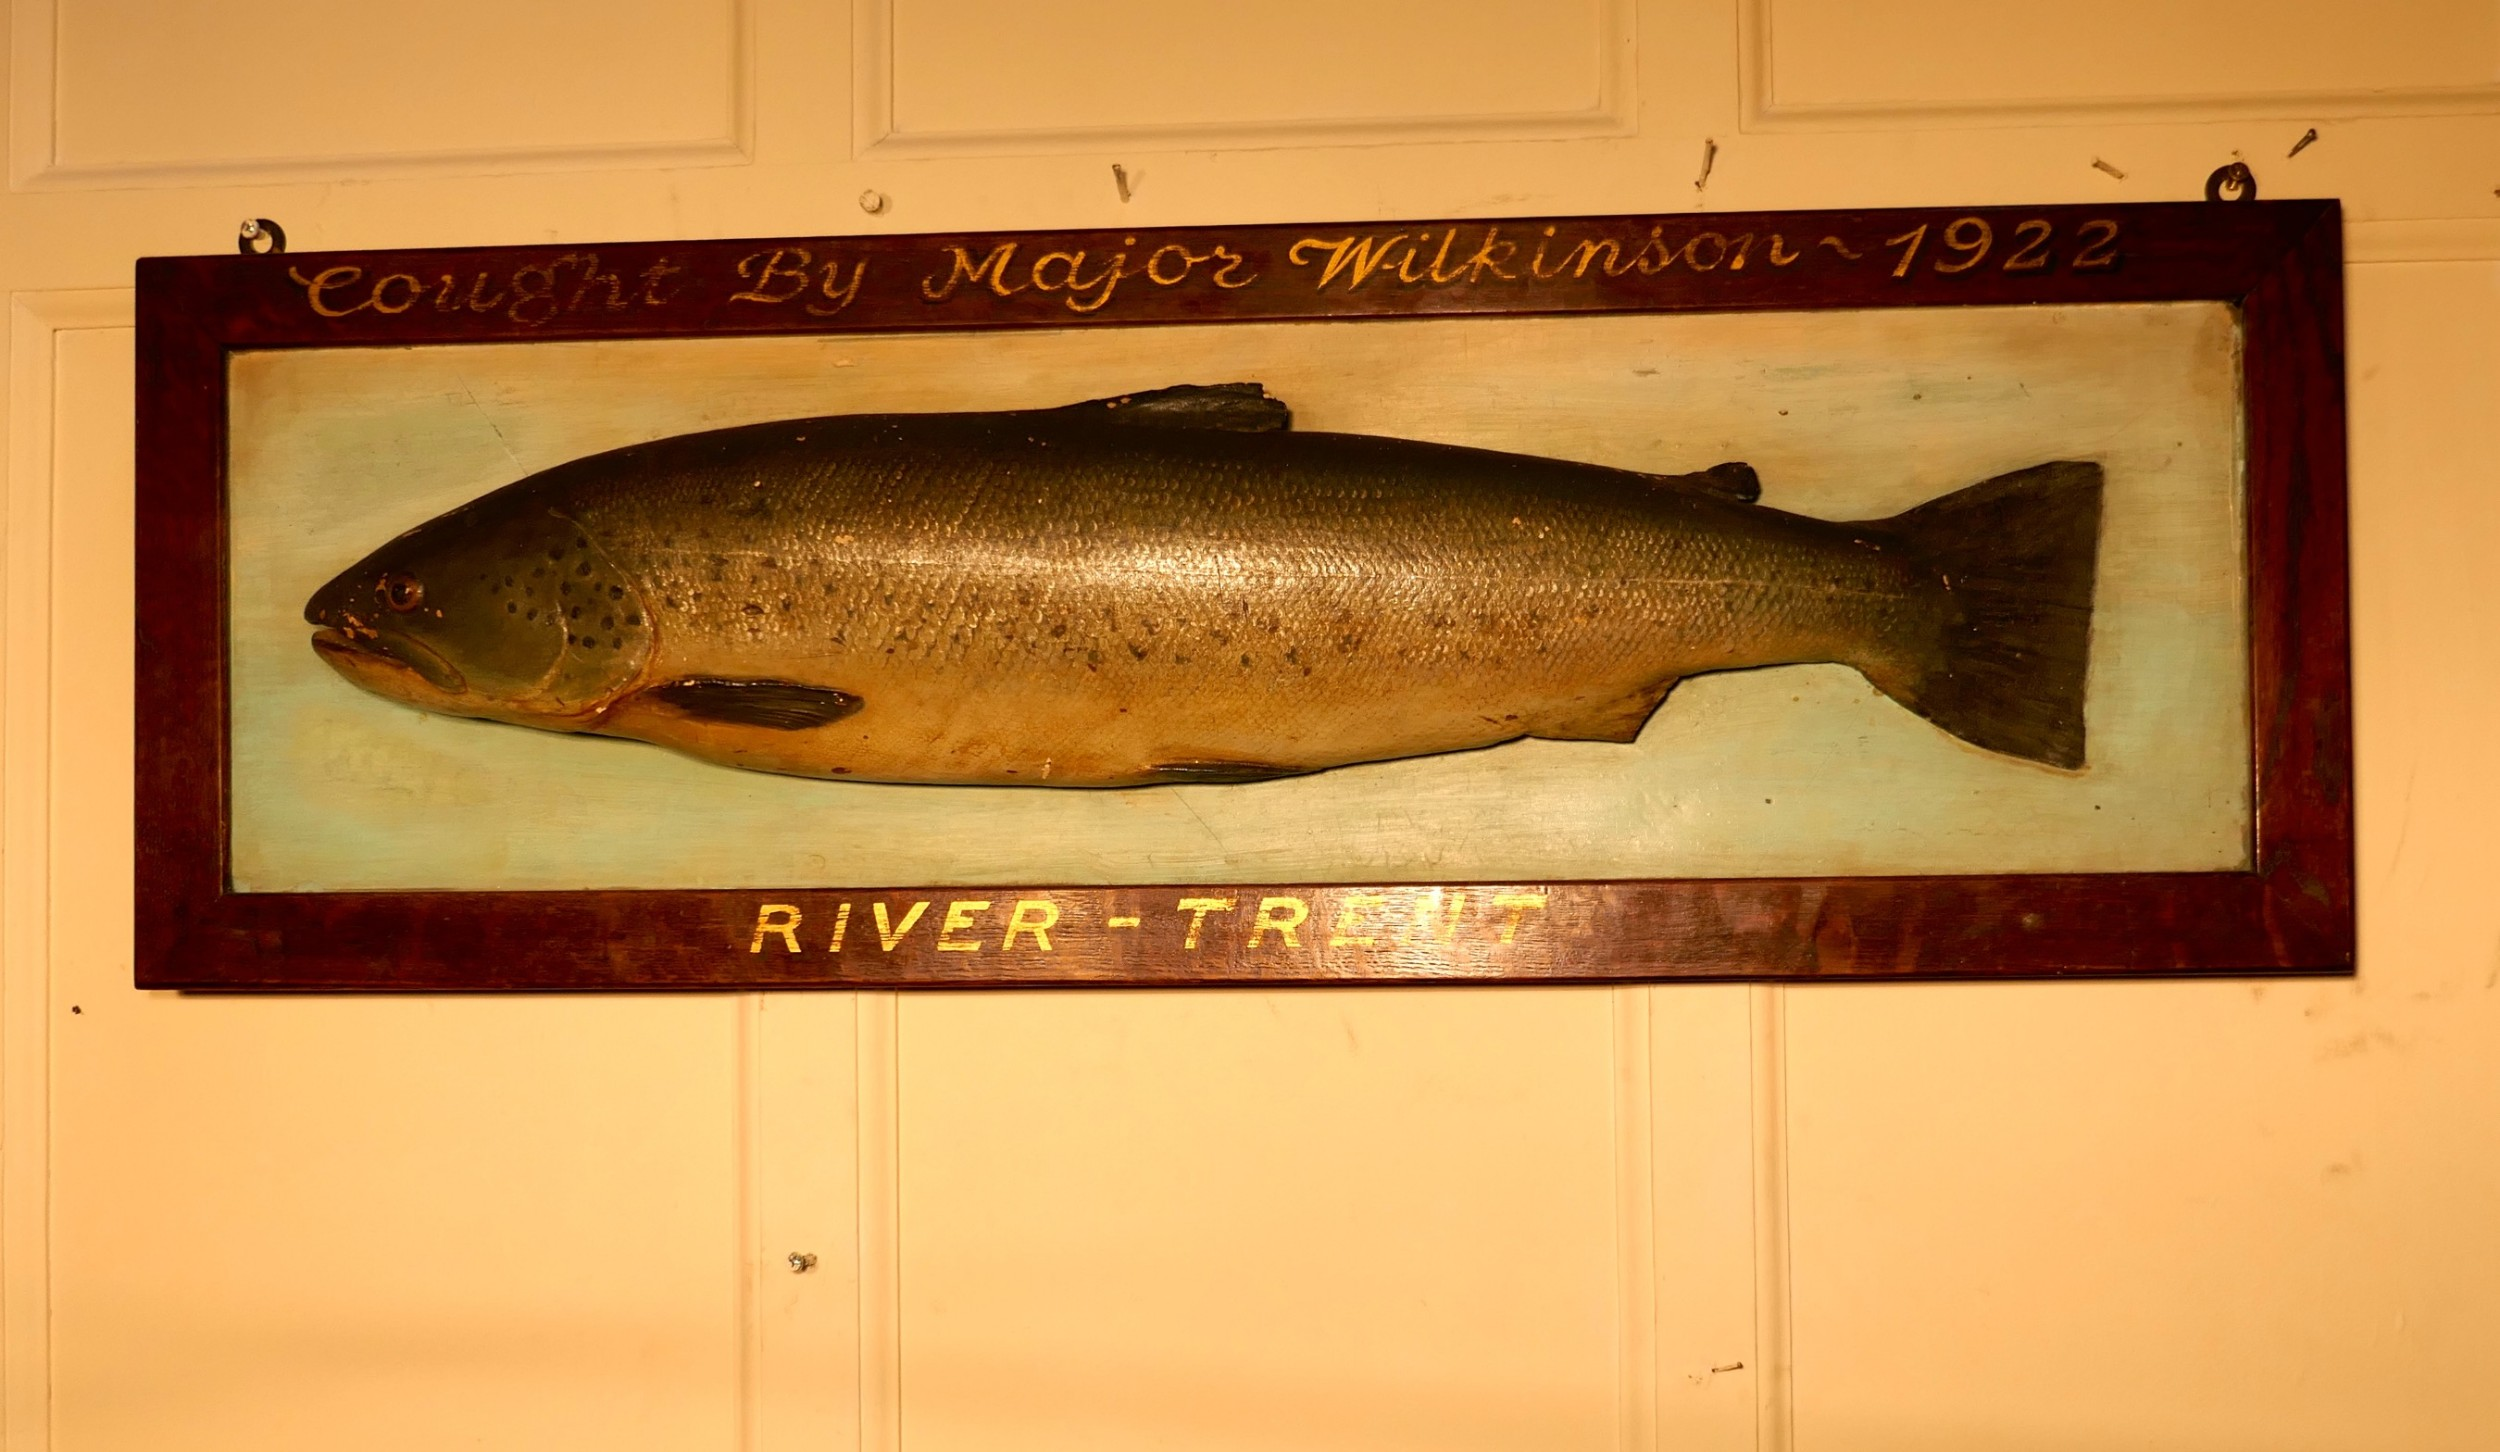 mounted taxidermy of a trout from the river trent 1922